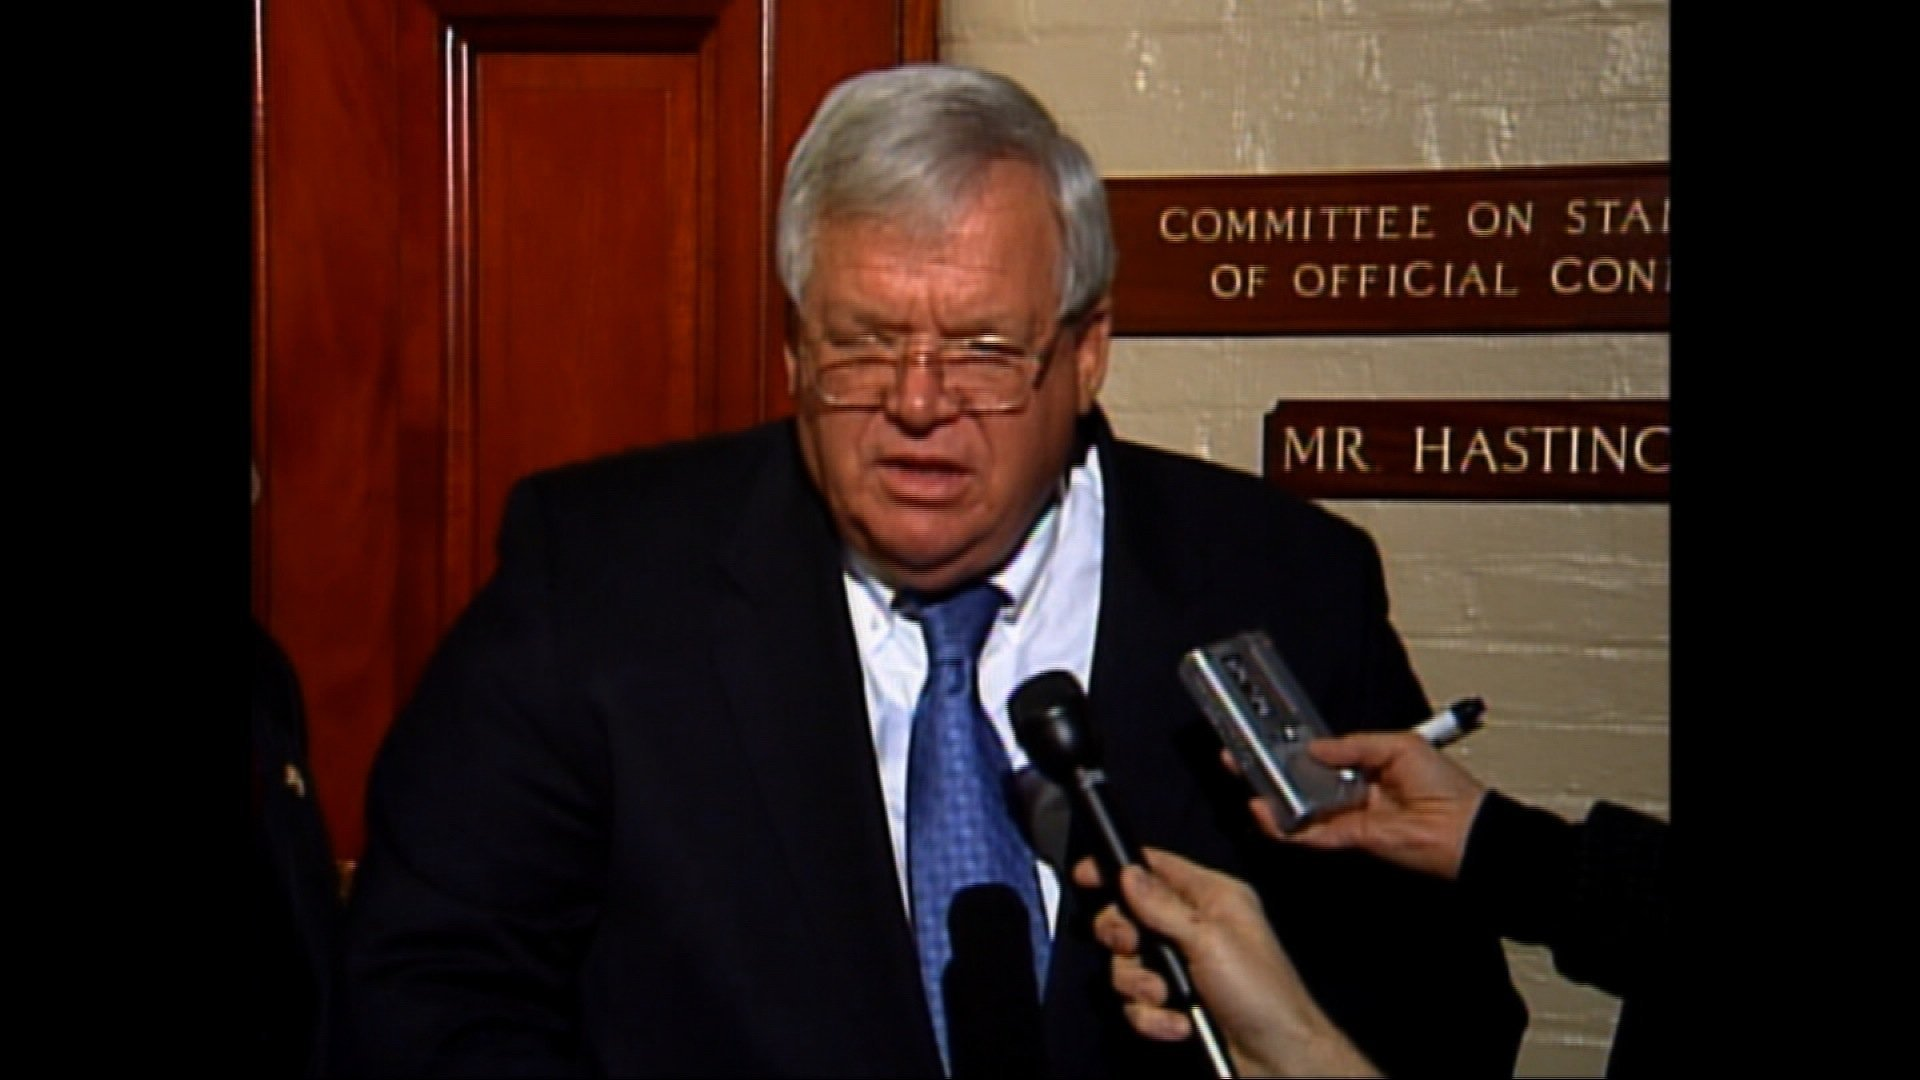 "A man who says former House Speaker Dennis Hastert sexually abused him has filed a lawsuit, seeking $1.8 million that the victim says was promised to him to cover up the abuse. The victim, identified by the complaint as ""James Doe,"" says Hastert breached a private settlement agreement for $3.5 million in exchange for the victim's silence. The complaint says Hastert paid $1.7 million from 2010-2014 until the FBI uncovered the transactions."